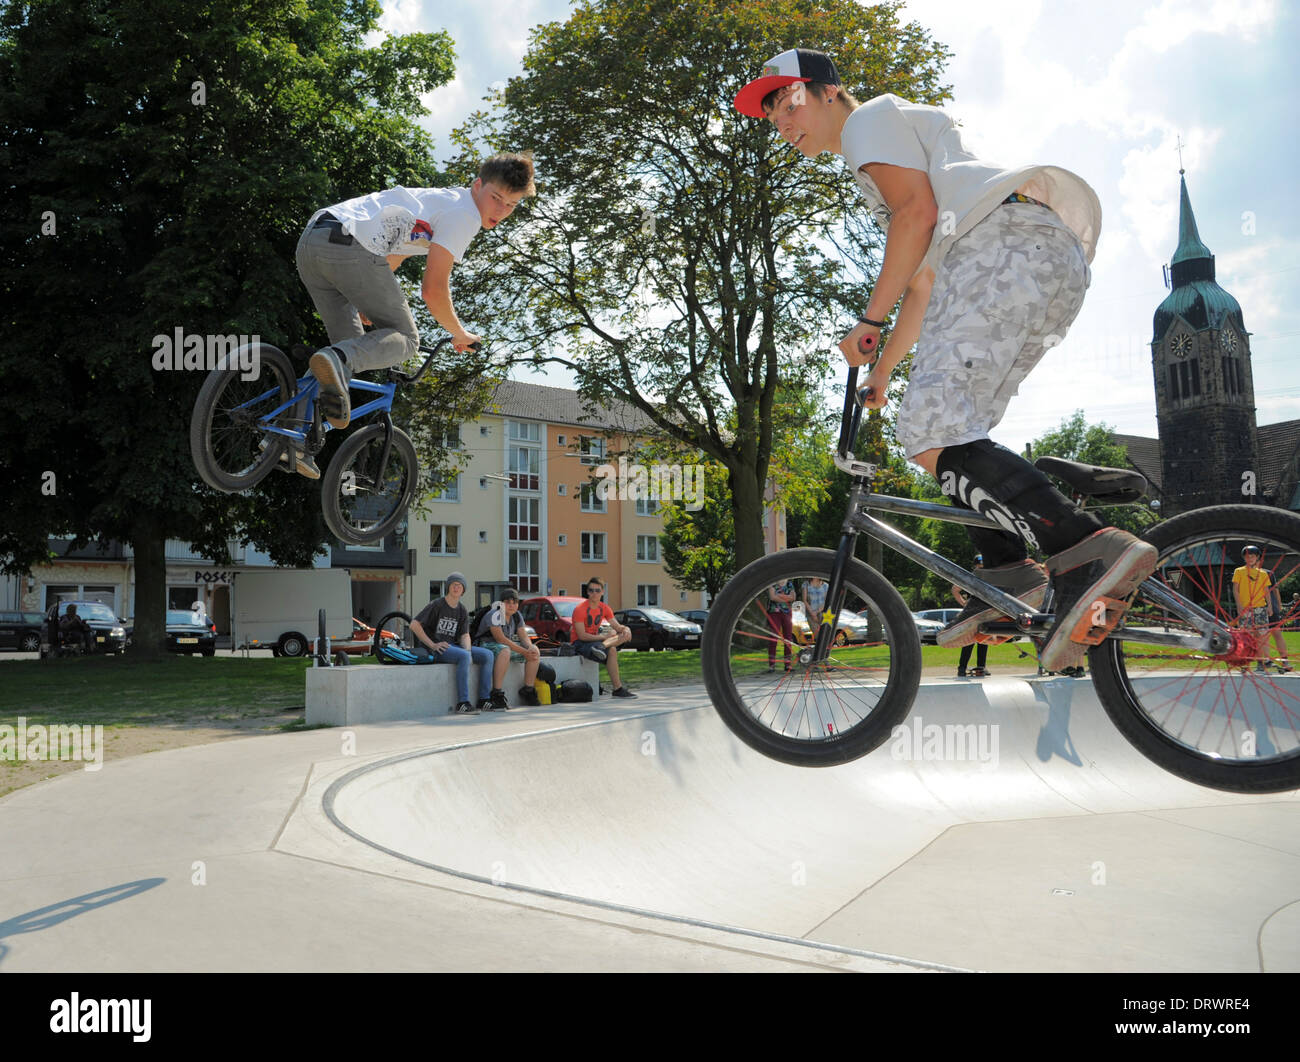 Two young bikers jump with their bikes at an urban biking park. - Stock Image